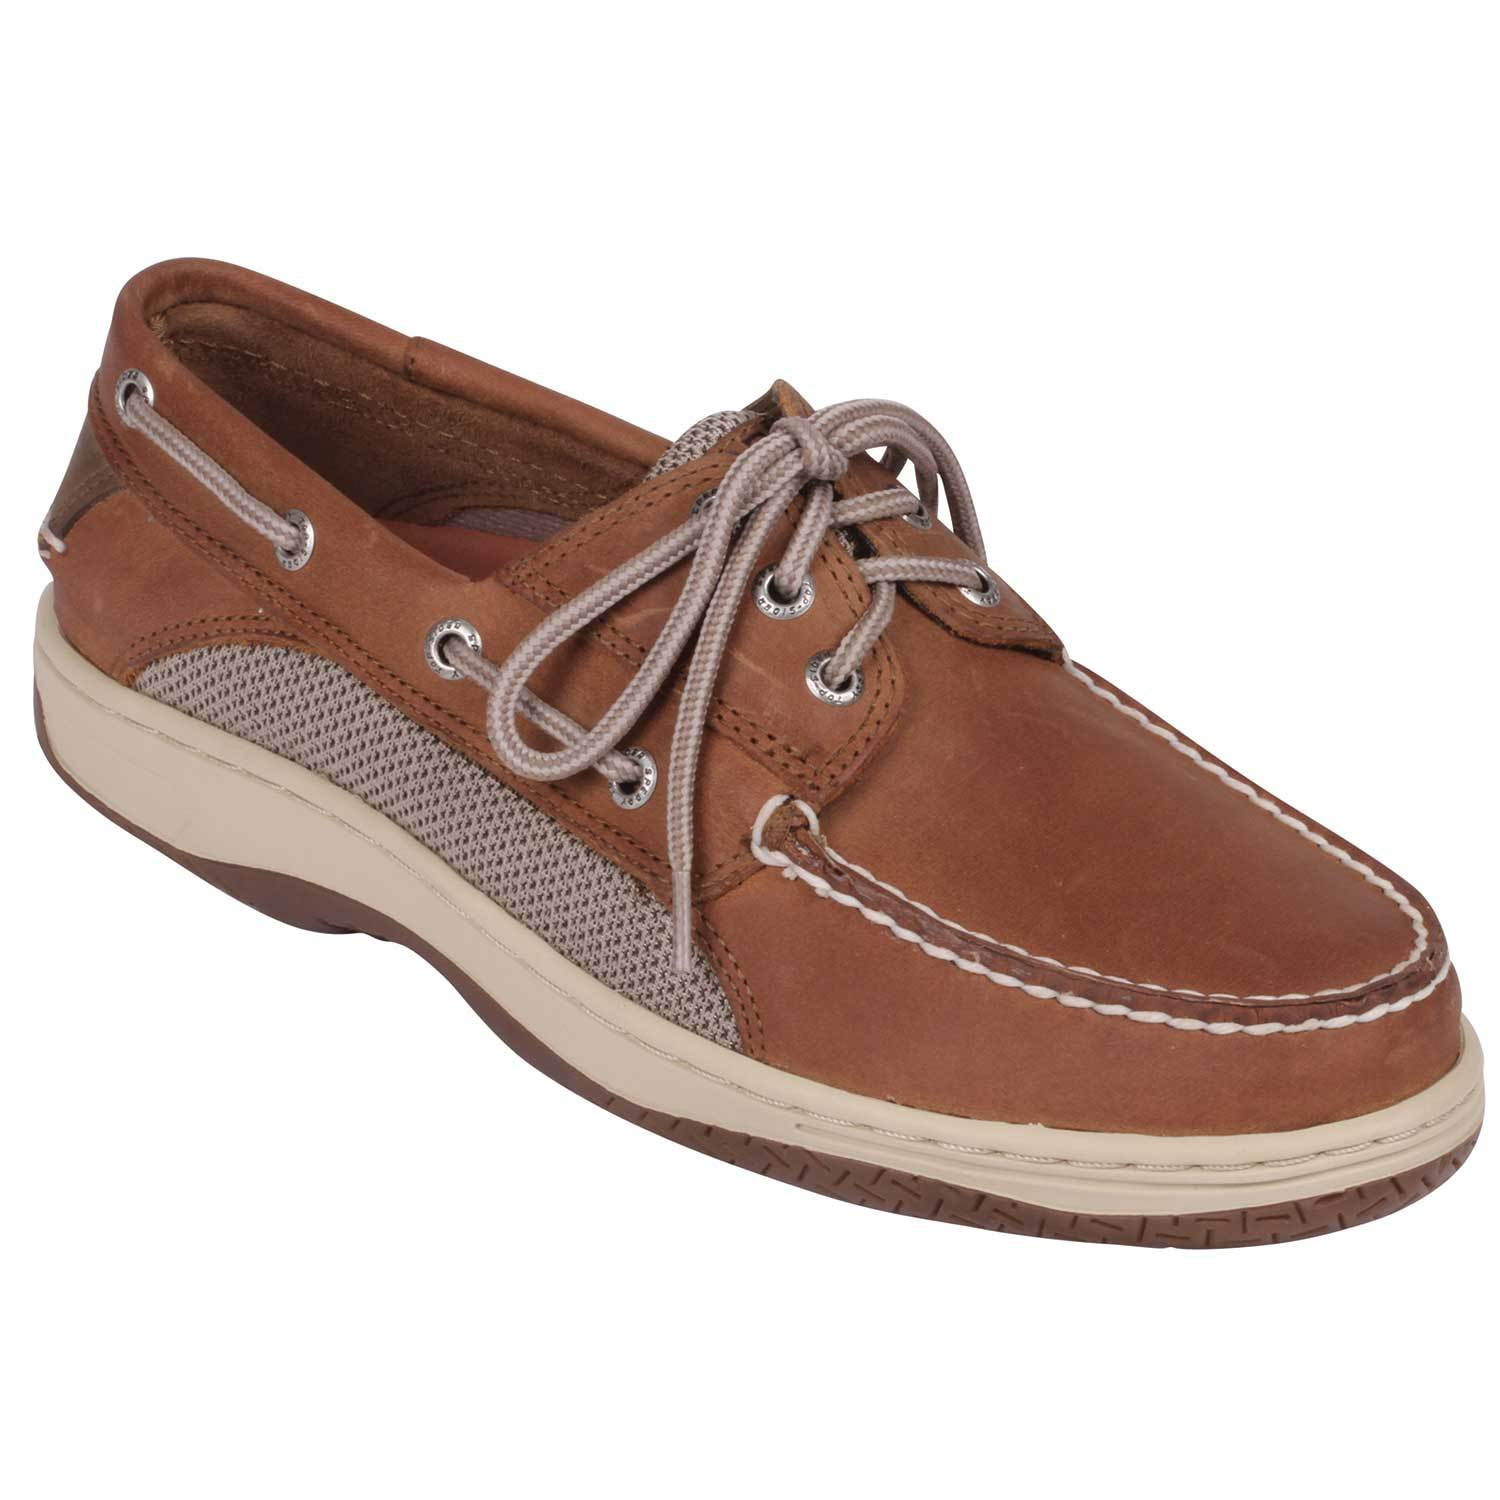 SPERRY Men's Billfish 3-Eye Boat Shoes, Wide Width | West Marine